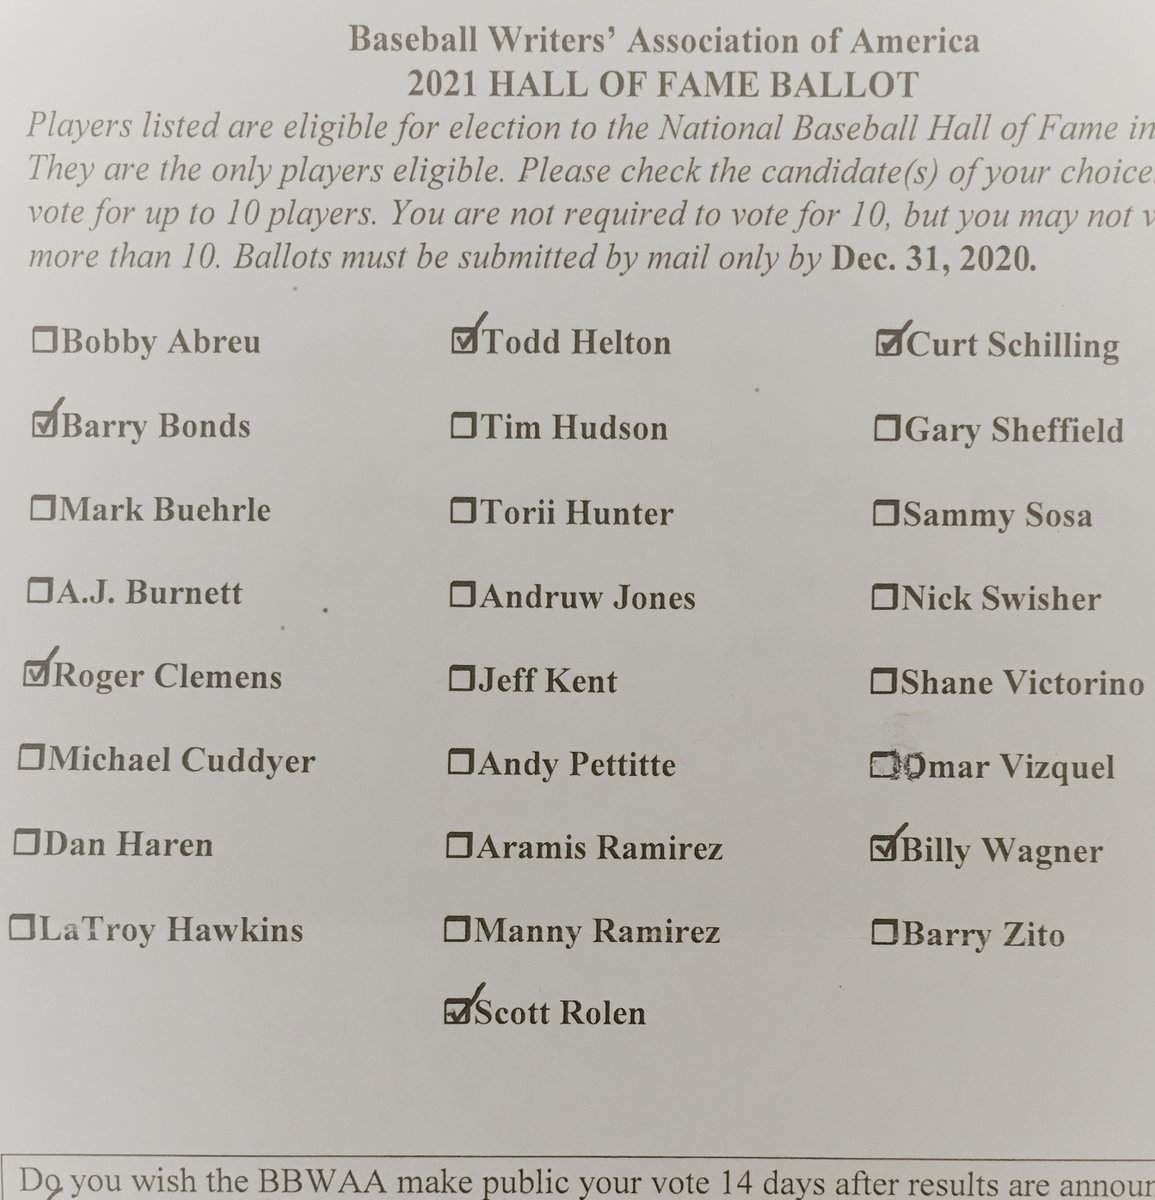 Some very, very difficult decisions... but, as always, an honor to take part in the process. @NotMrTibbs